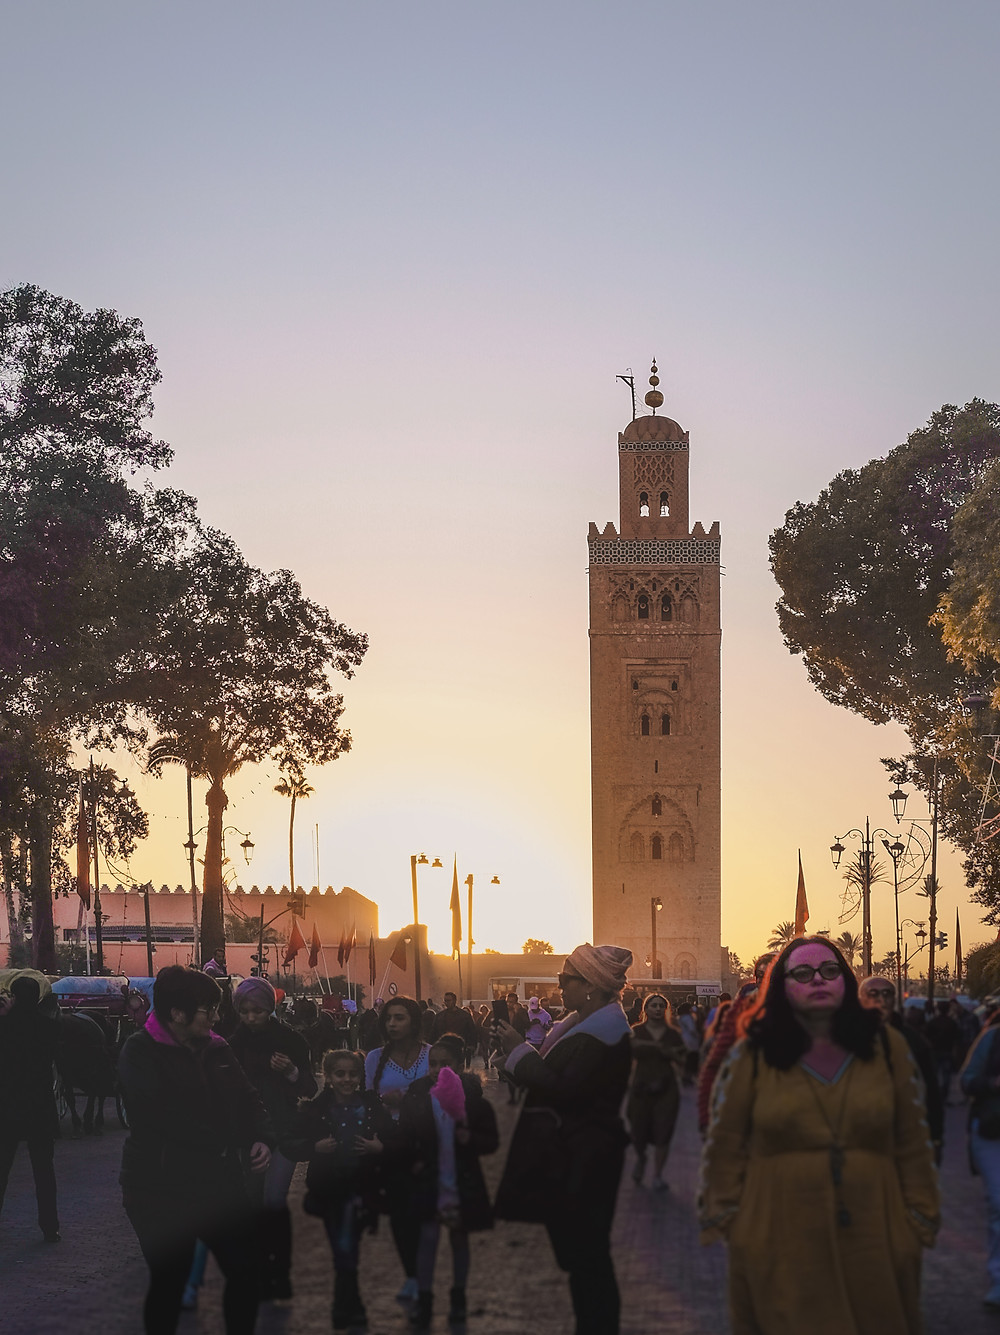 Silhouettes of the Koutoubia Mosque minaret and the crowds against the evening sky. | RollingBear Travels